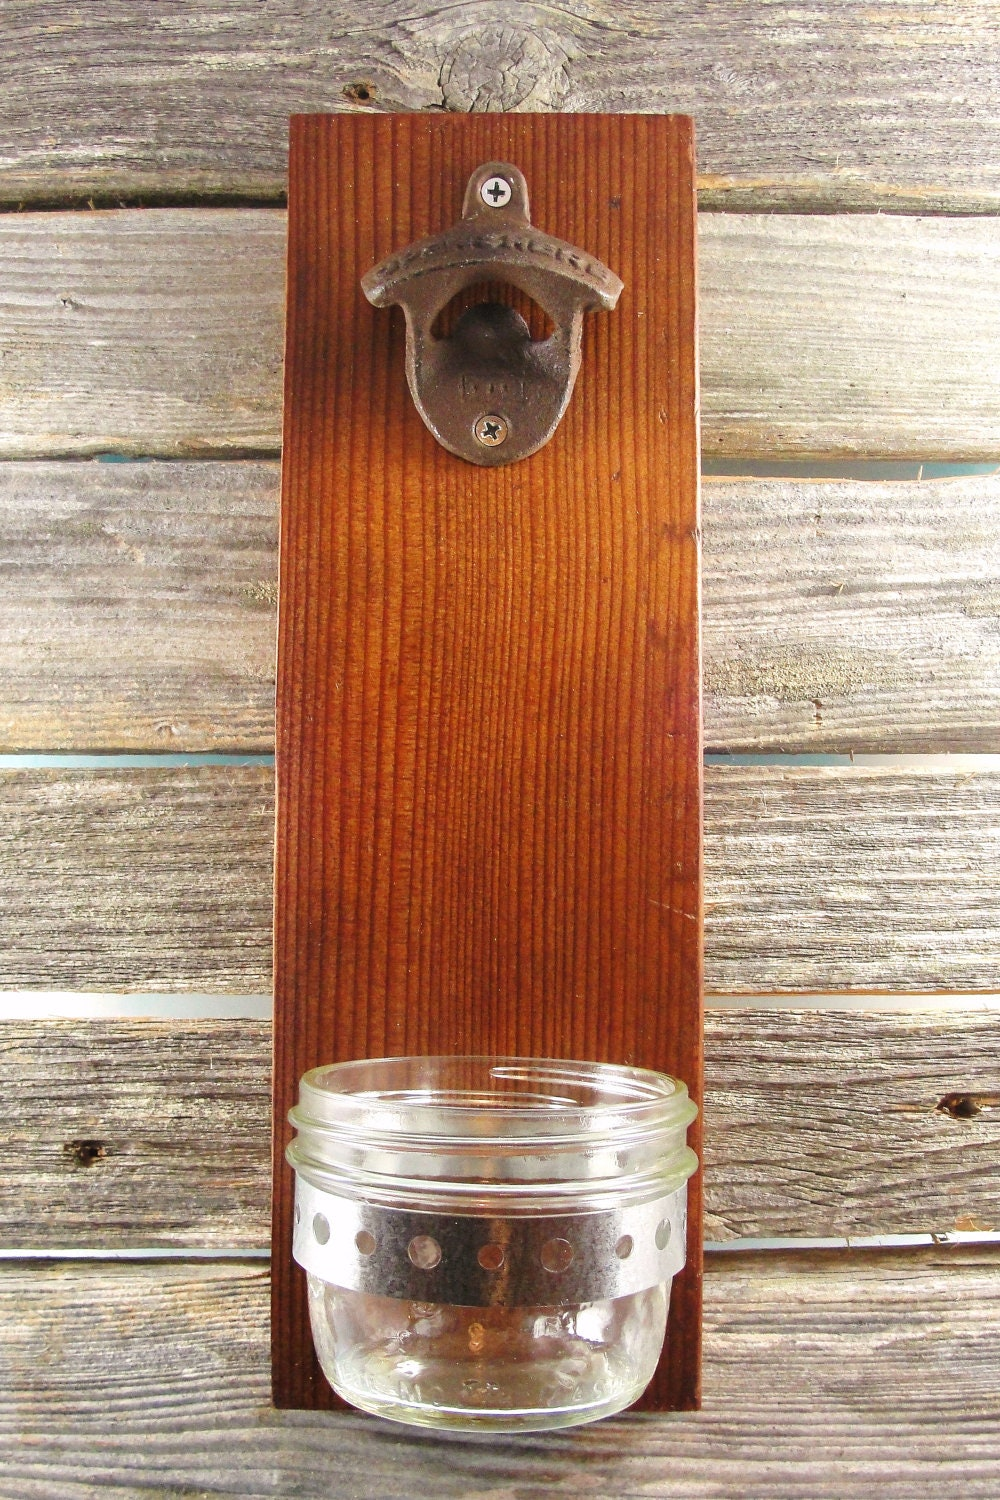 Bottle opener upcycled wood wall mount mason jar cap catcher - Wall mounted beer bottle opener cap catcher ...